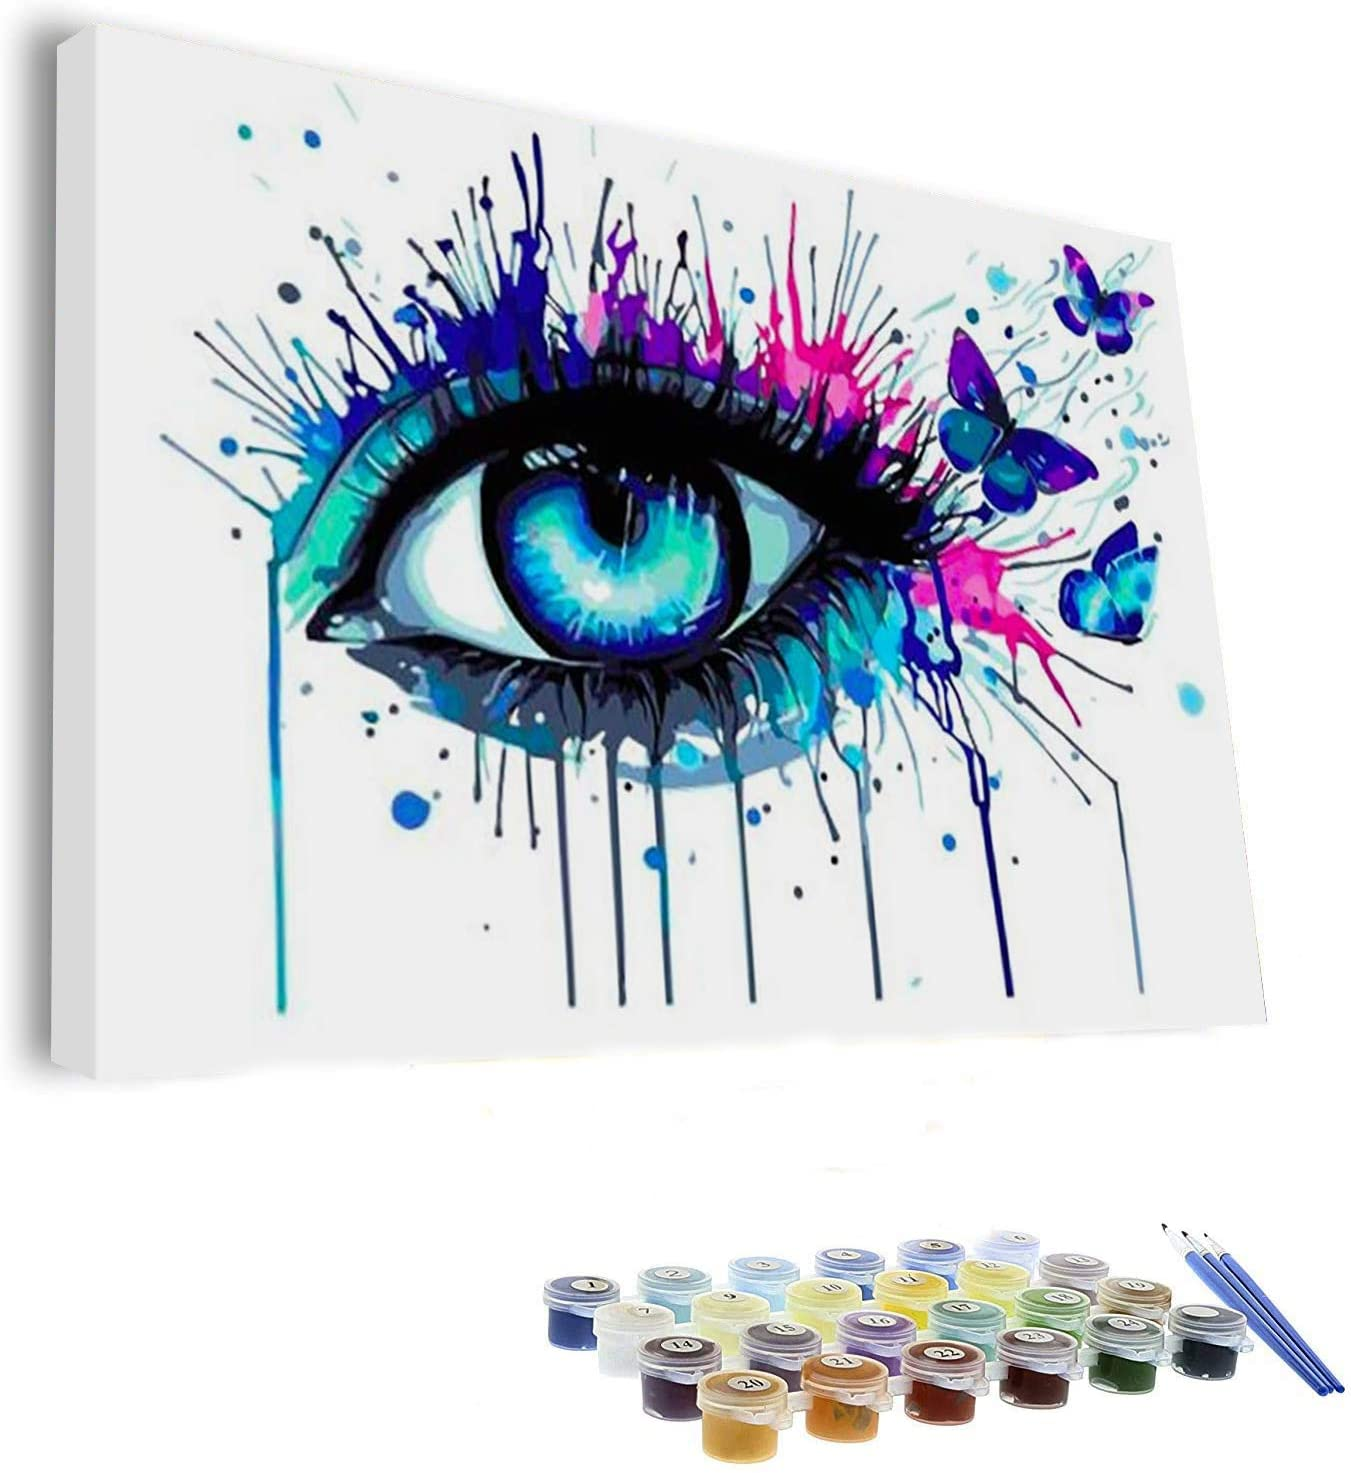 Paint by Numbers for Adults 20x16 inches Canvas, DIY with Family, Acrylic Wall Decor (Eye) (Fully Framed)